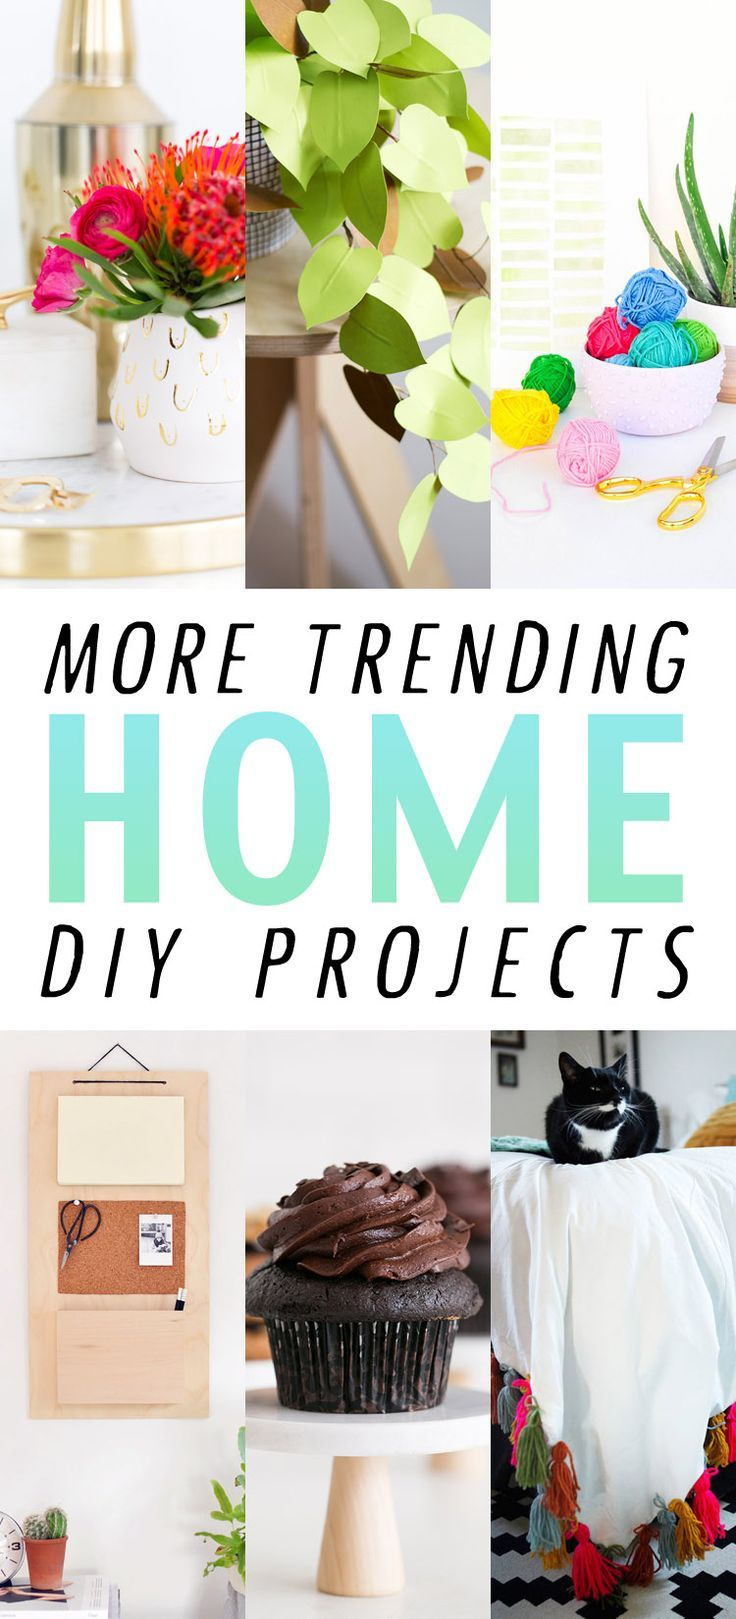 Trending crafts for home decor